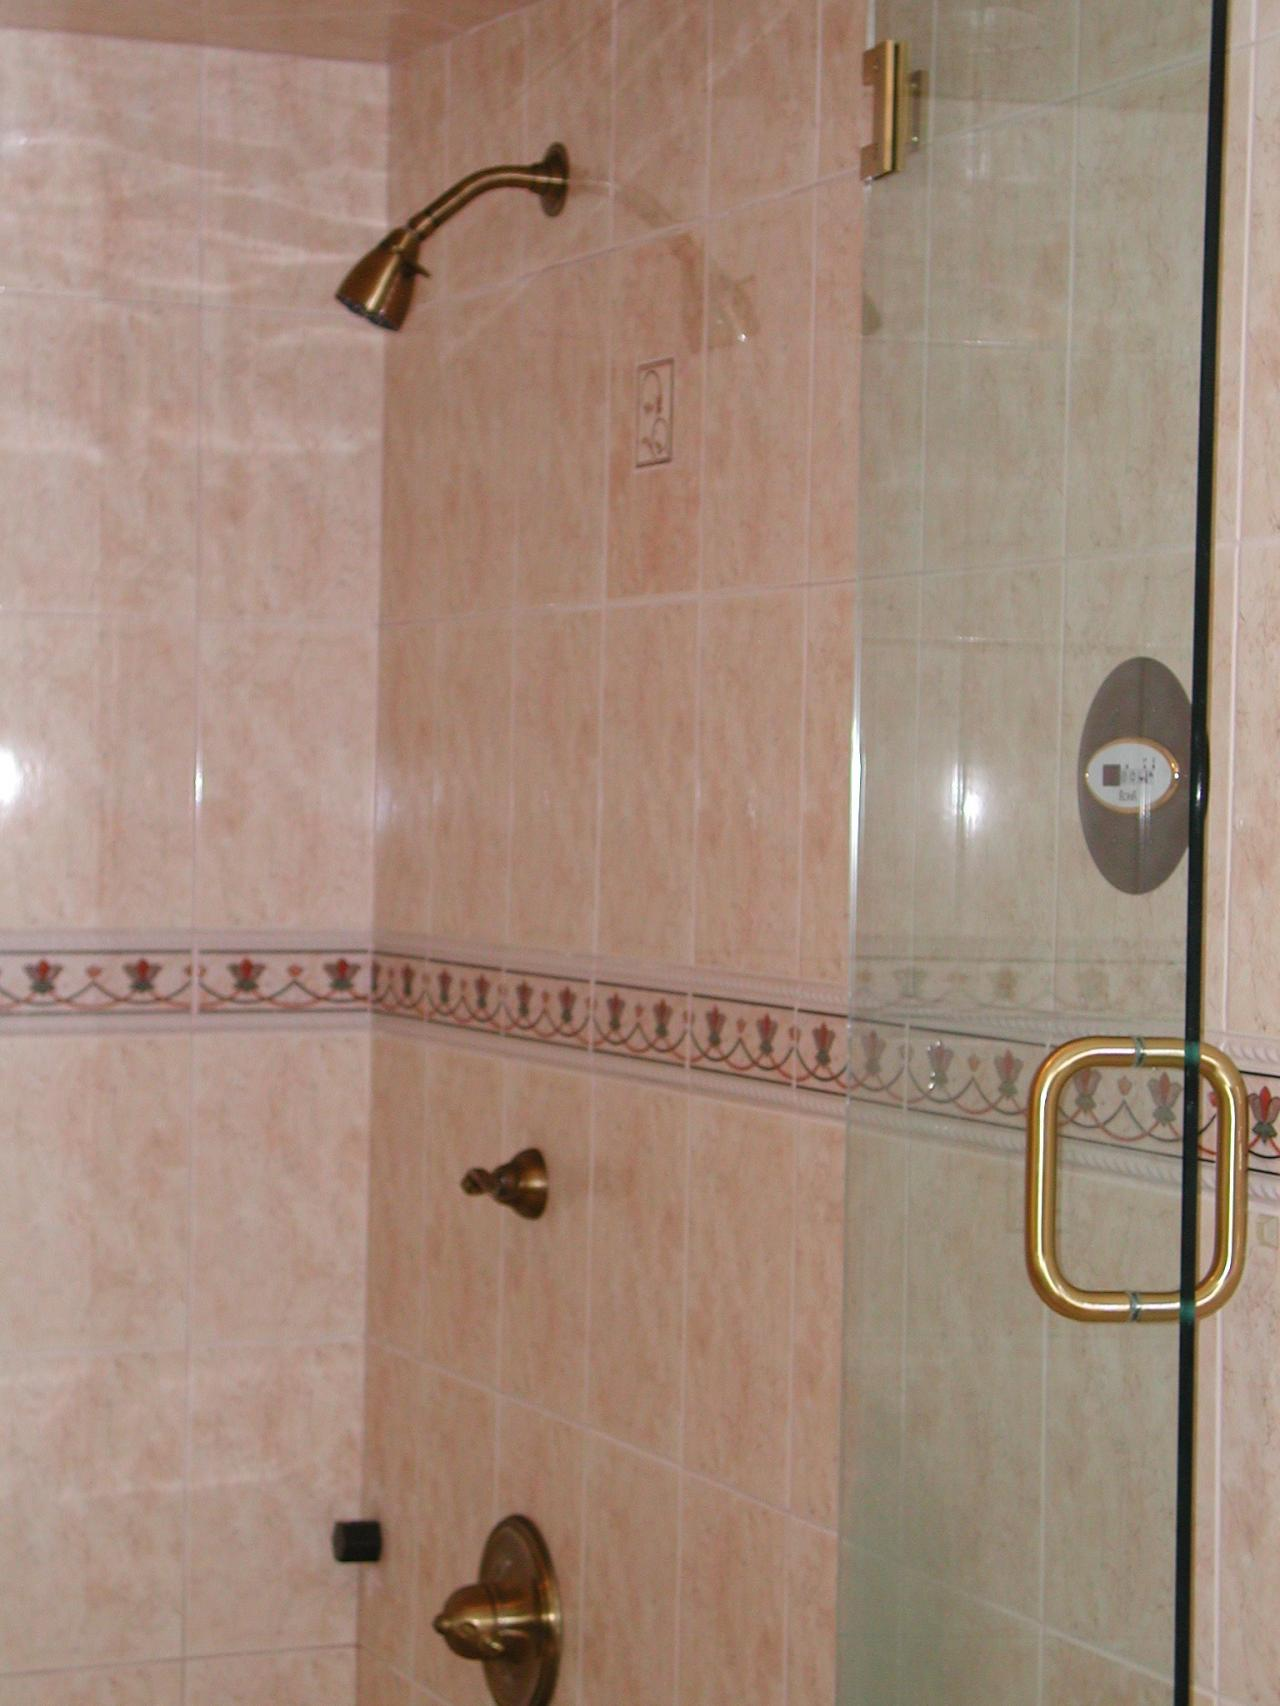 Nest homes construction bathroom remodeling in cleveland for Bathroom remodeling cleveland ohio